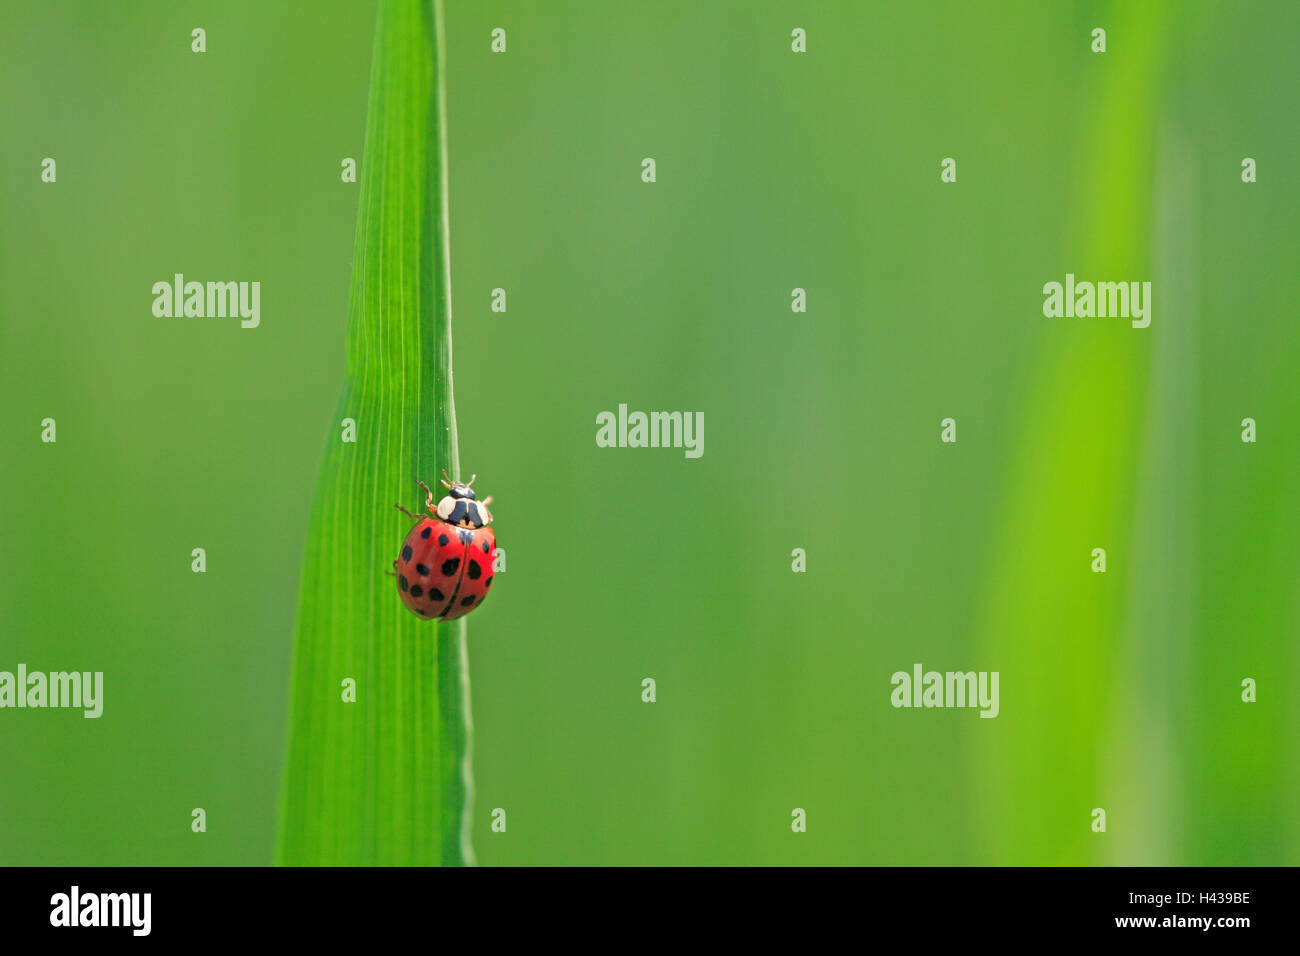 Blade of grass, ladybird, grass, leaves, stalk, green, animal, beetle, insect, red, dots, scored, luck bringer, - Stock Image